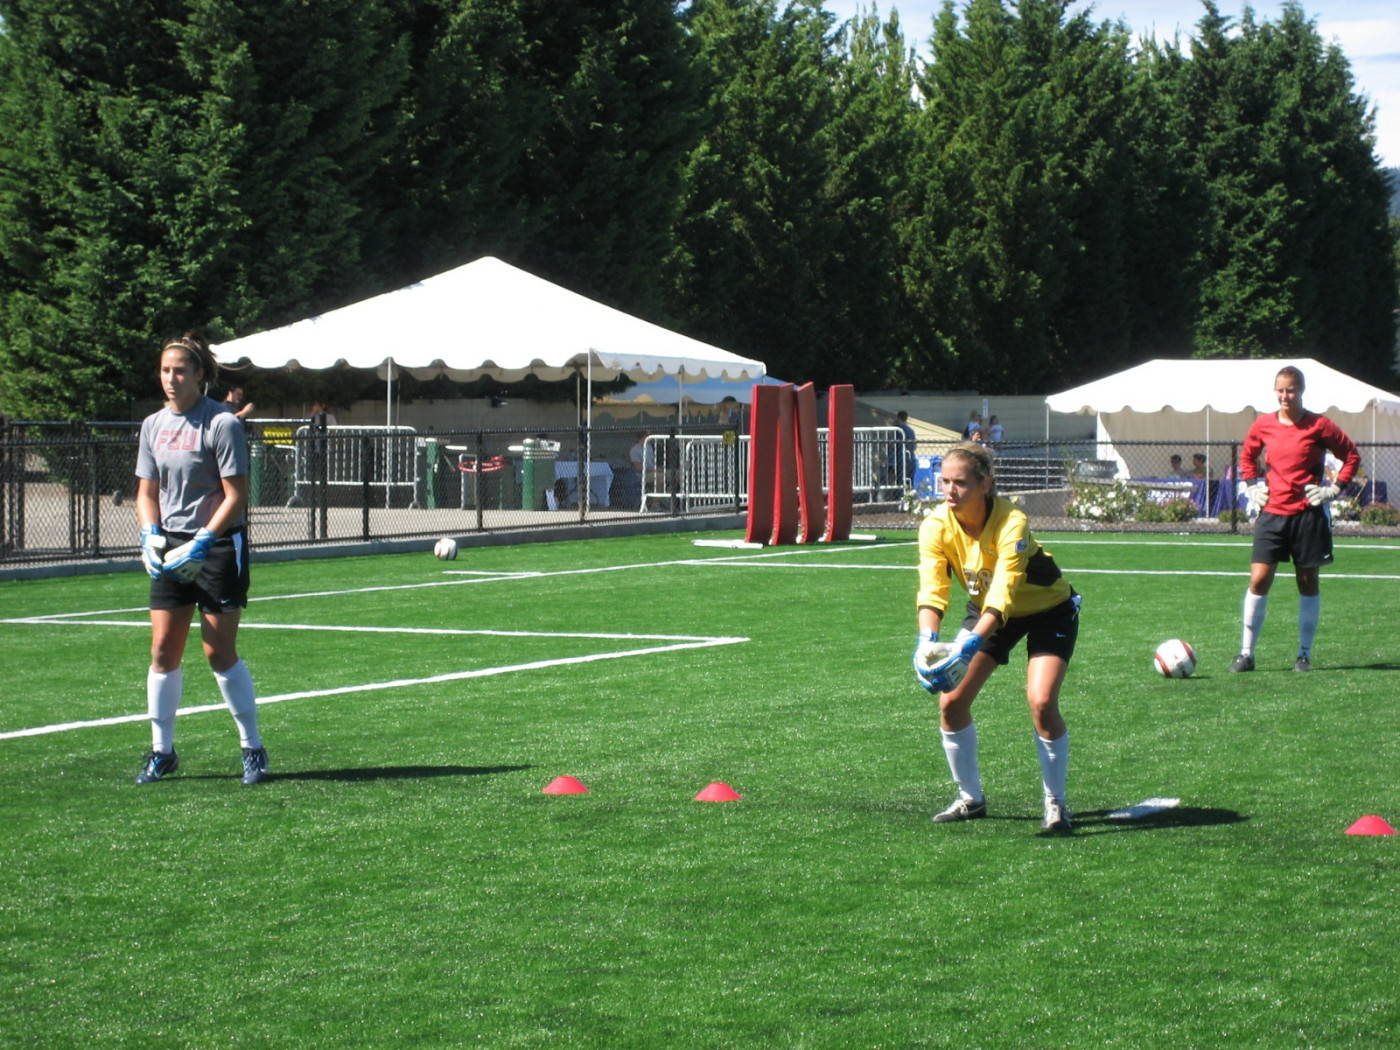 Day 2 of training in Portland